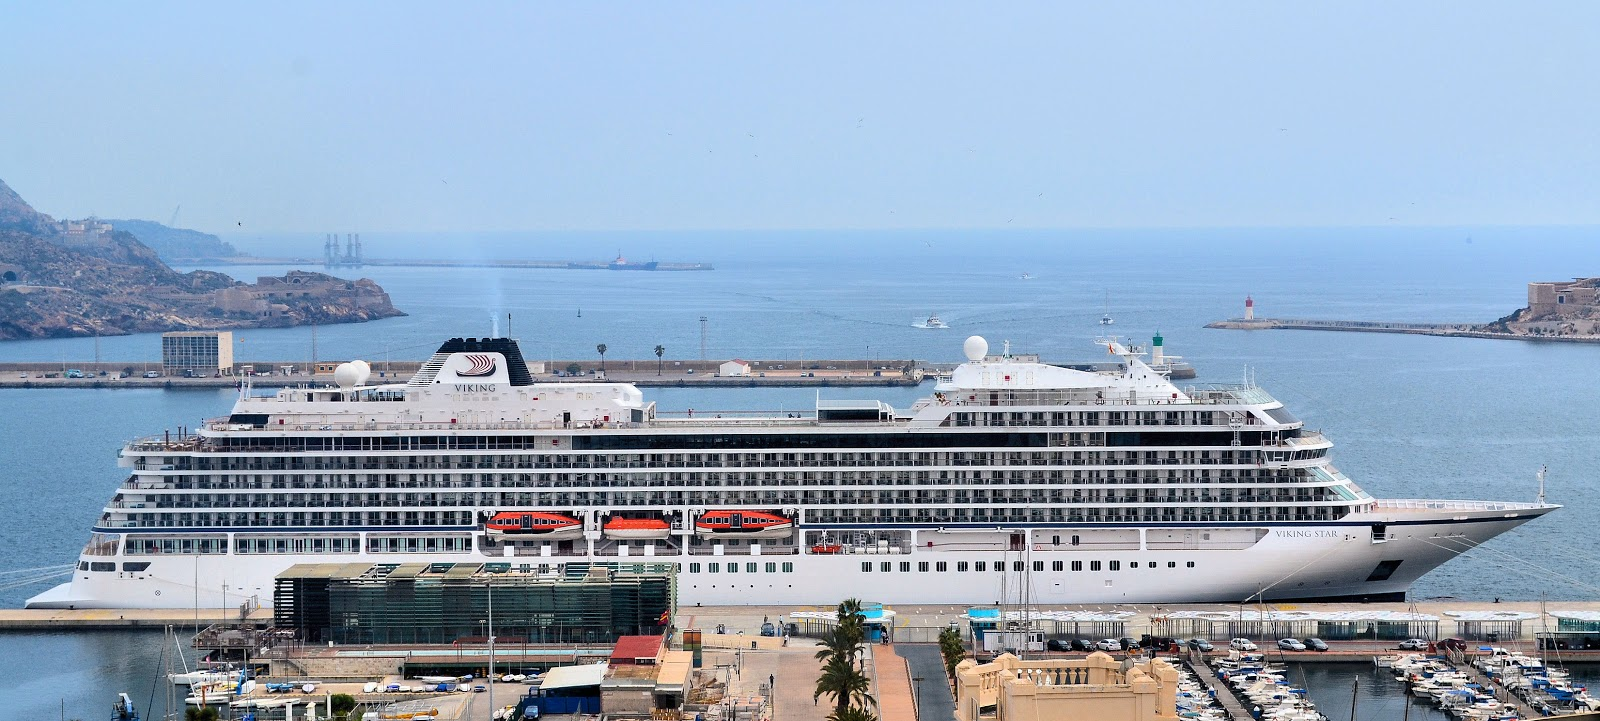 The first of the Viking Oceans liners, the Viking Star debuted in 2015 and is seen here docked in Gibraltar. Photo: © EuroTravelogue™. Unauthorized use is prohibited.